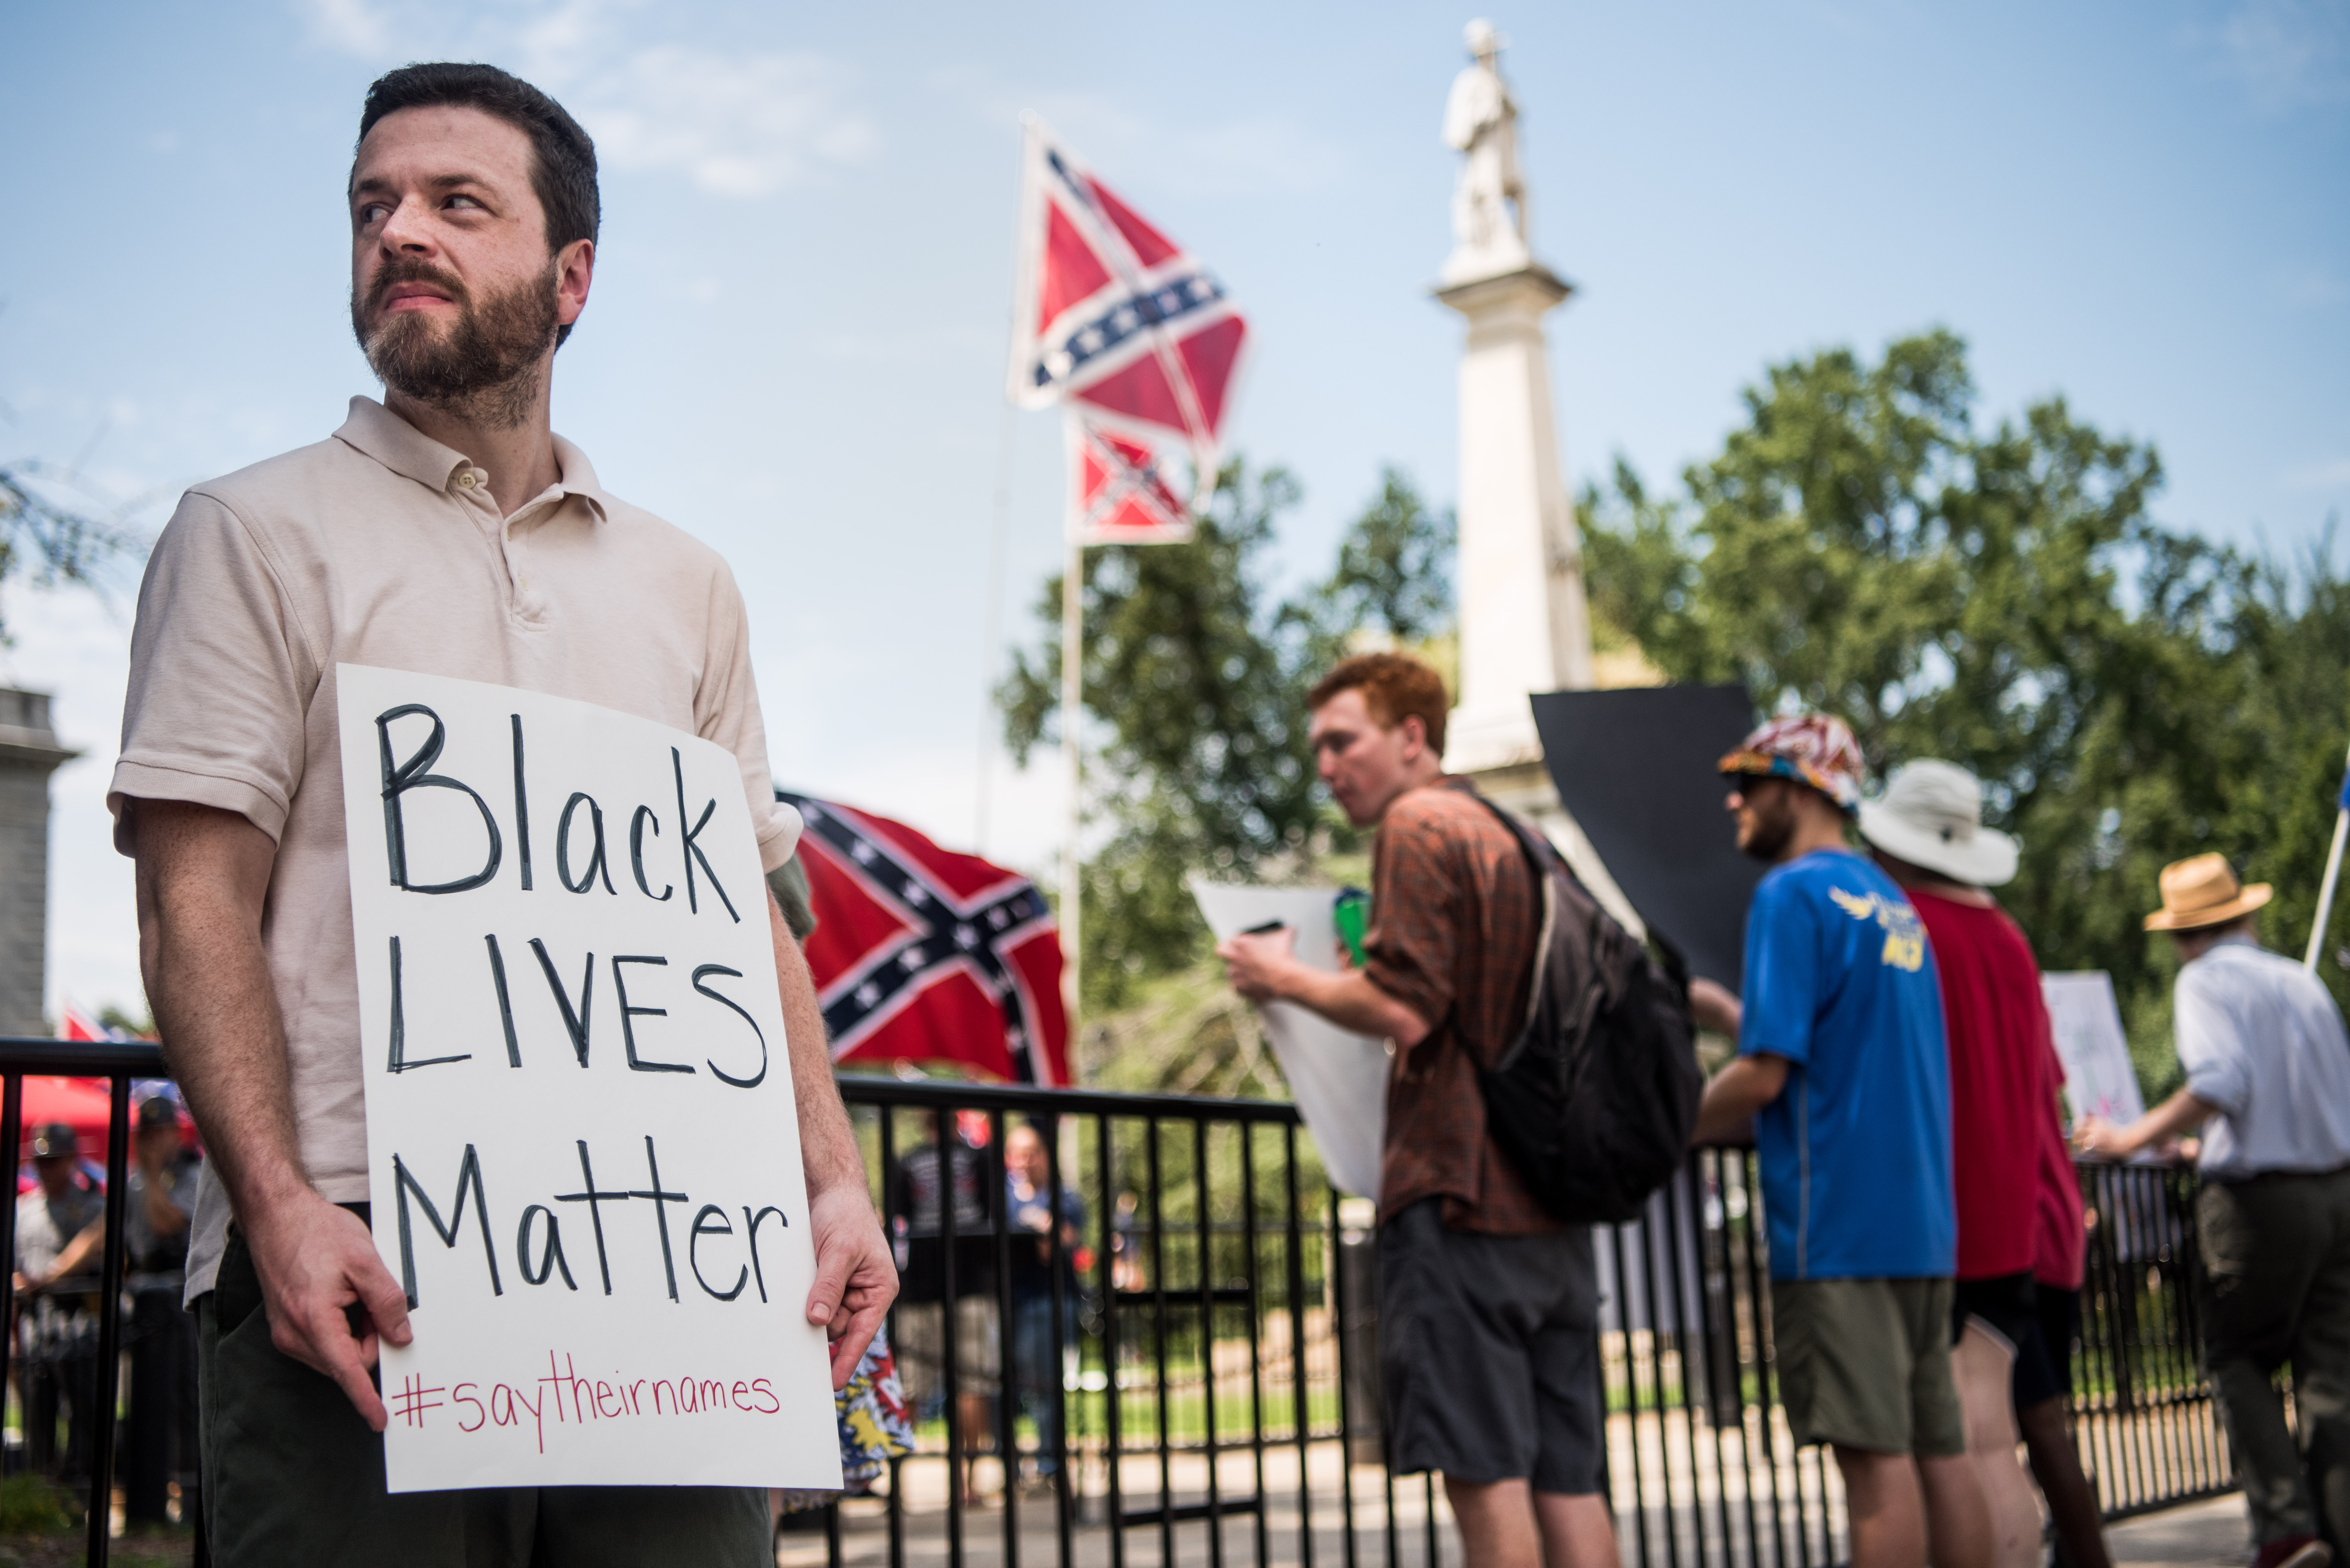 Activists Raise Confederate Flag At SC Statehouse 2 Years After Its Removal